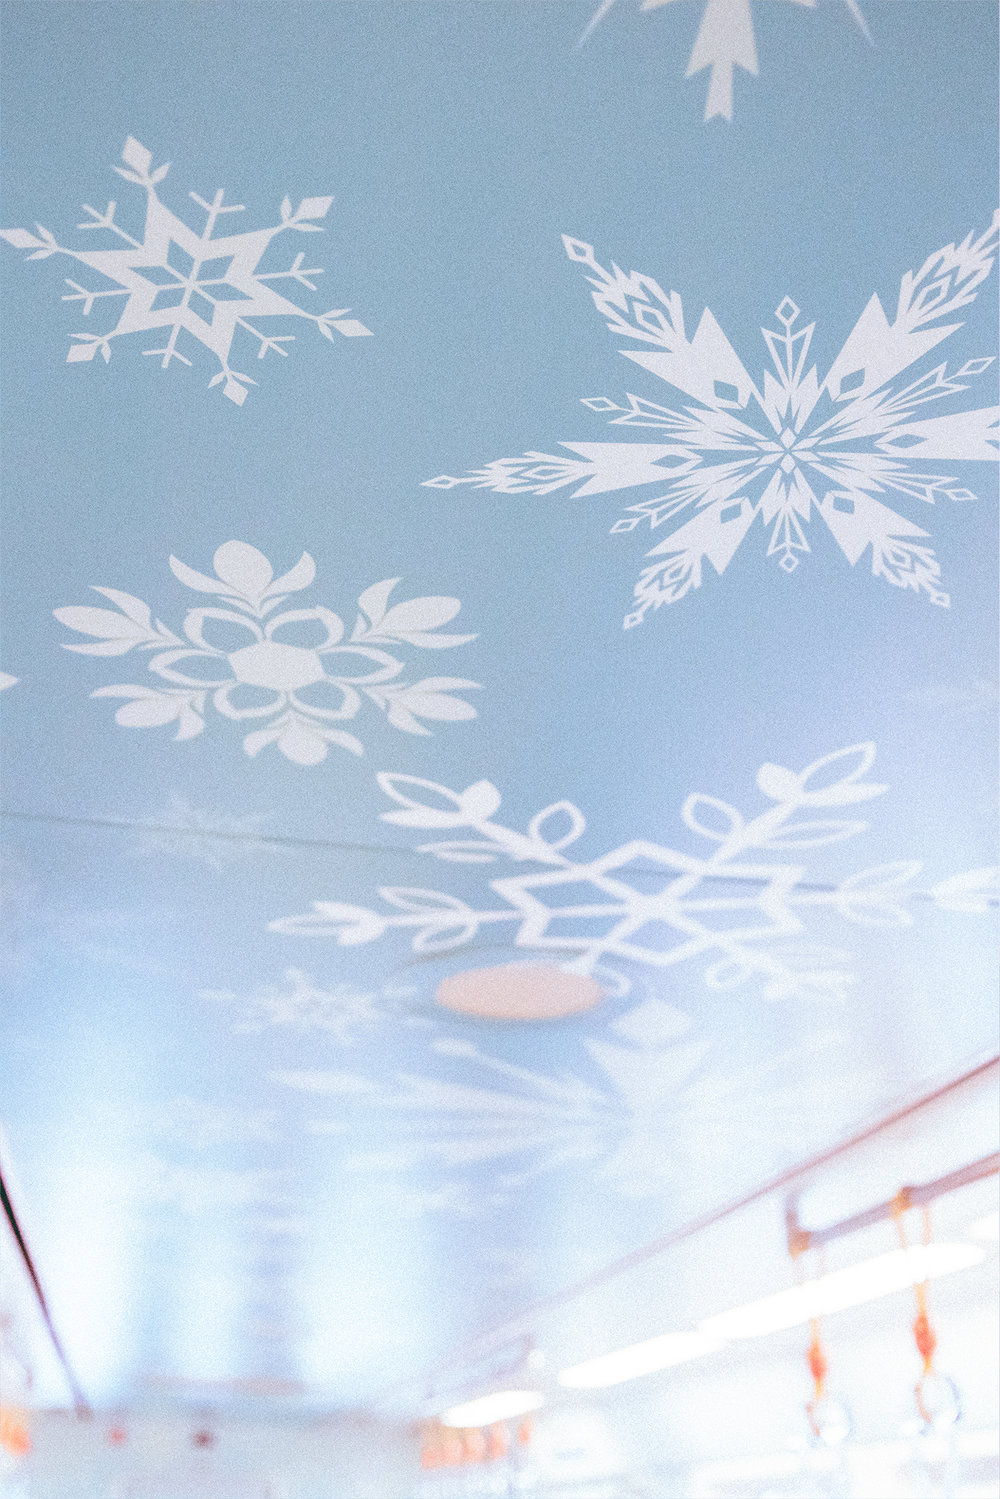 Every inch of this monorail is covered in Frozen fractals.